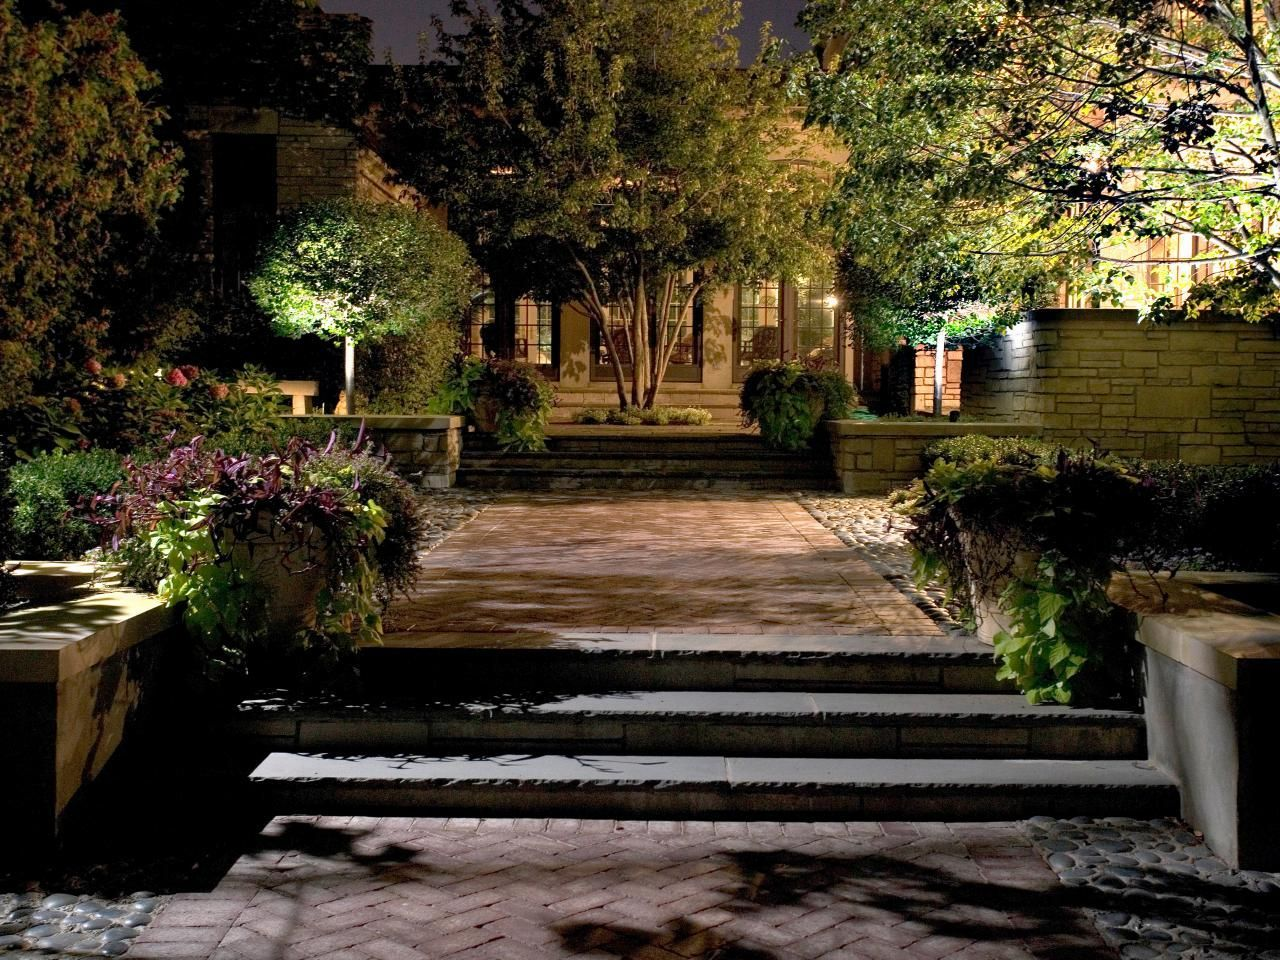 22 Landscape Lighting Ideas Diy Electrical Wiring How Tos Light Fixtures Ceiling Fans Safety